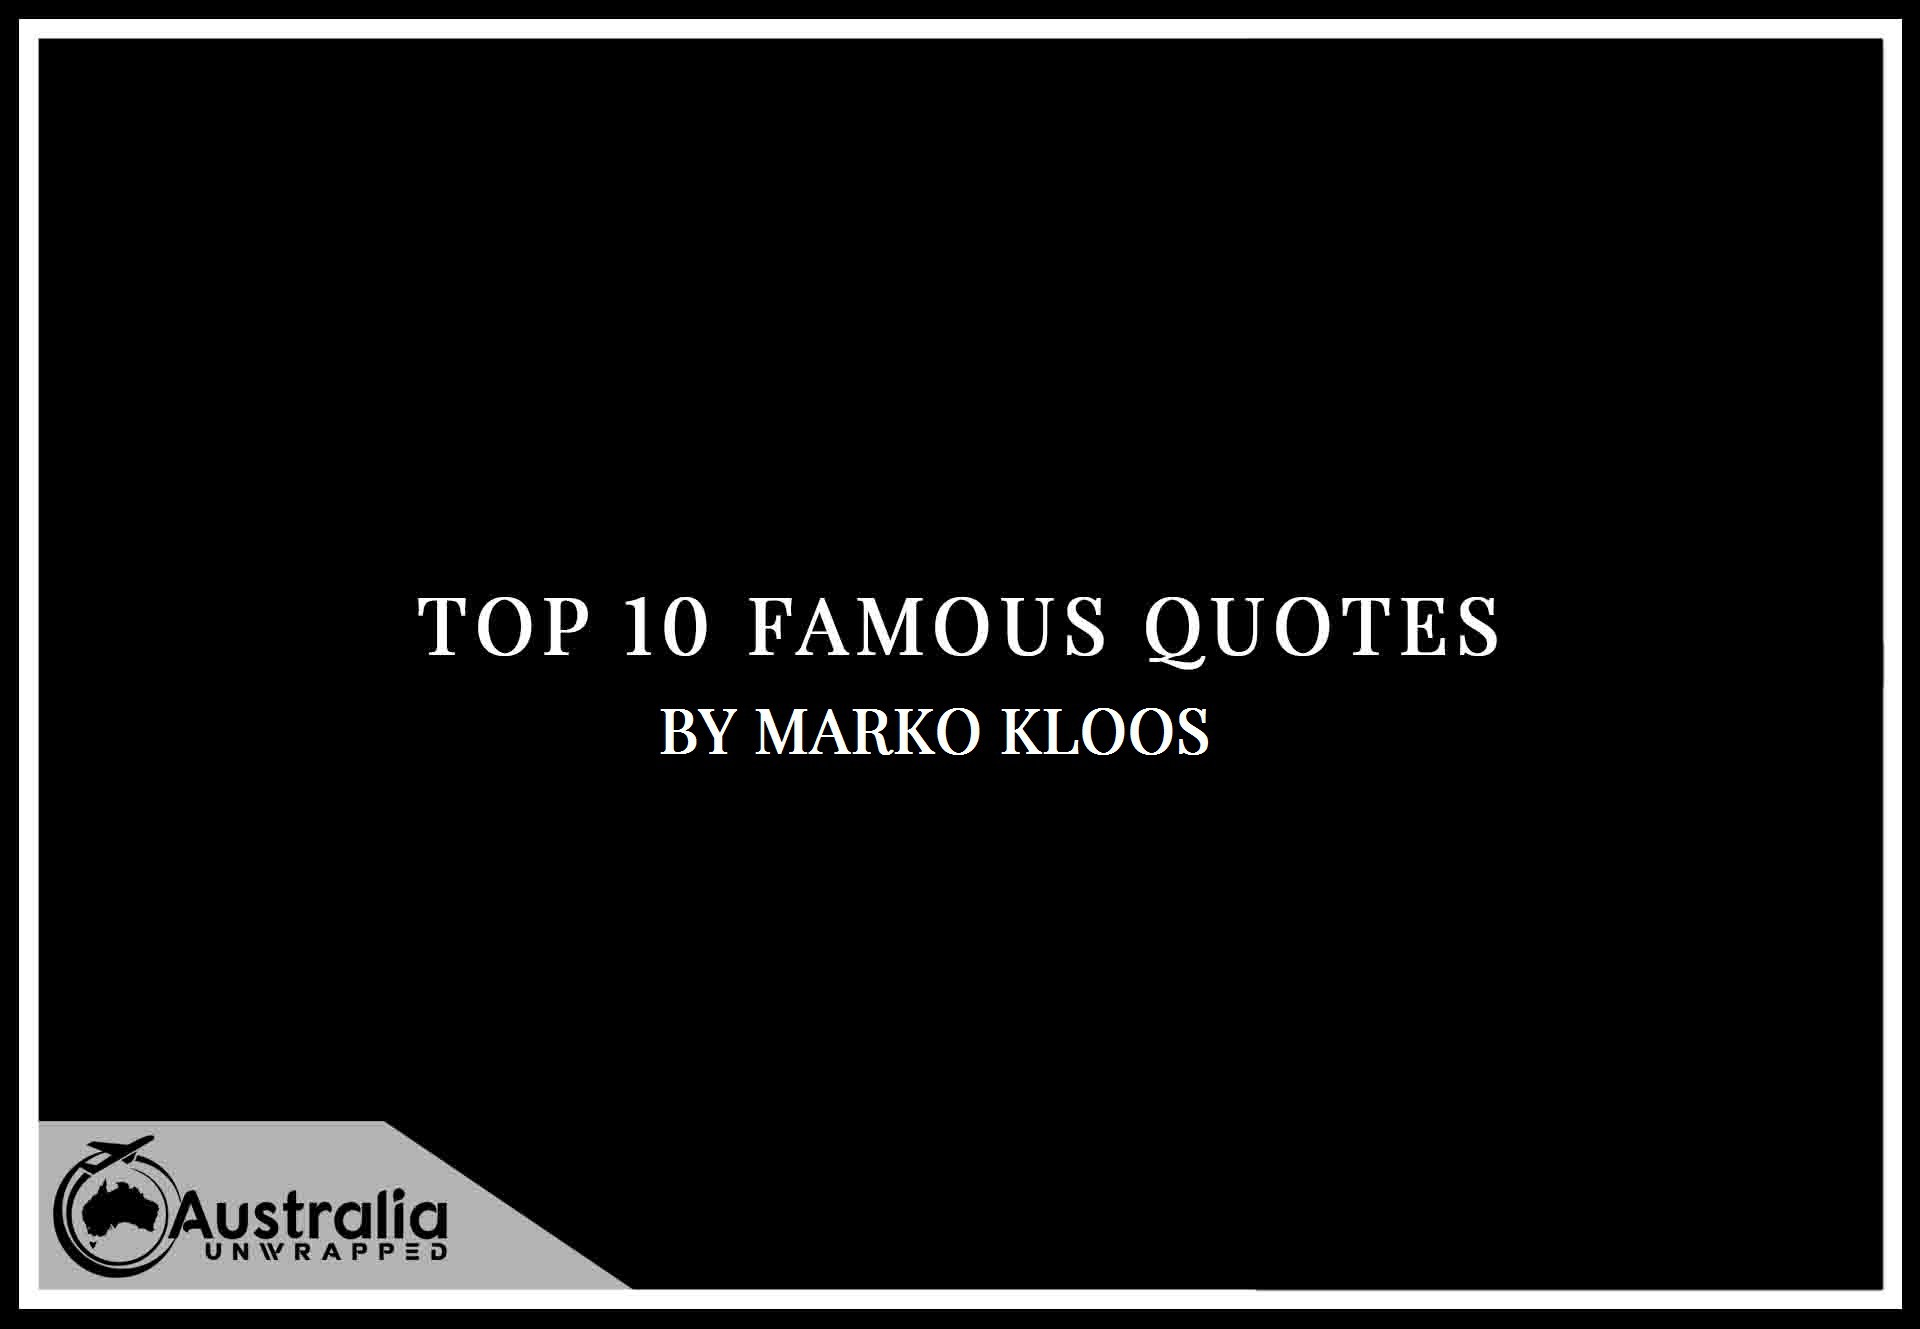 Marko Kloos's Top 10 Popular and Famous Quotes